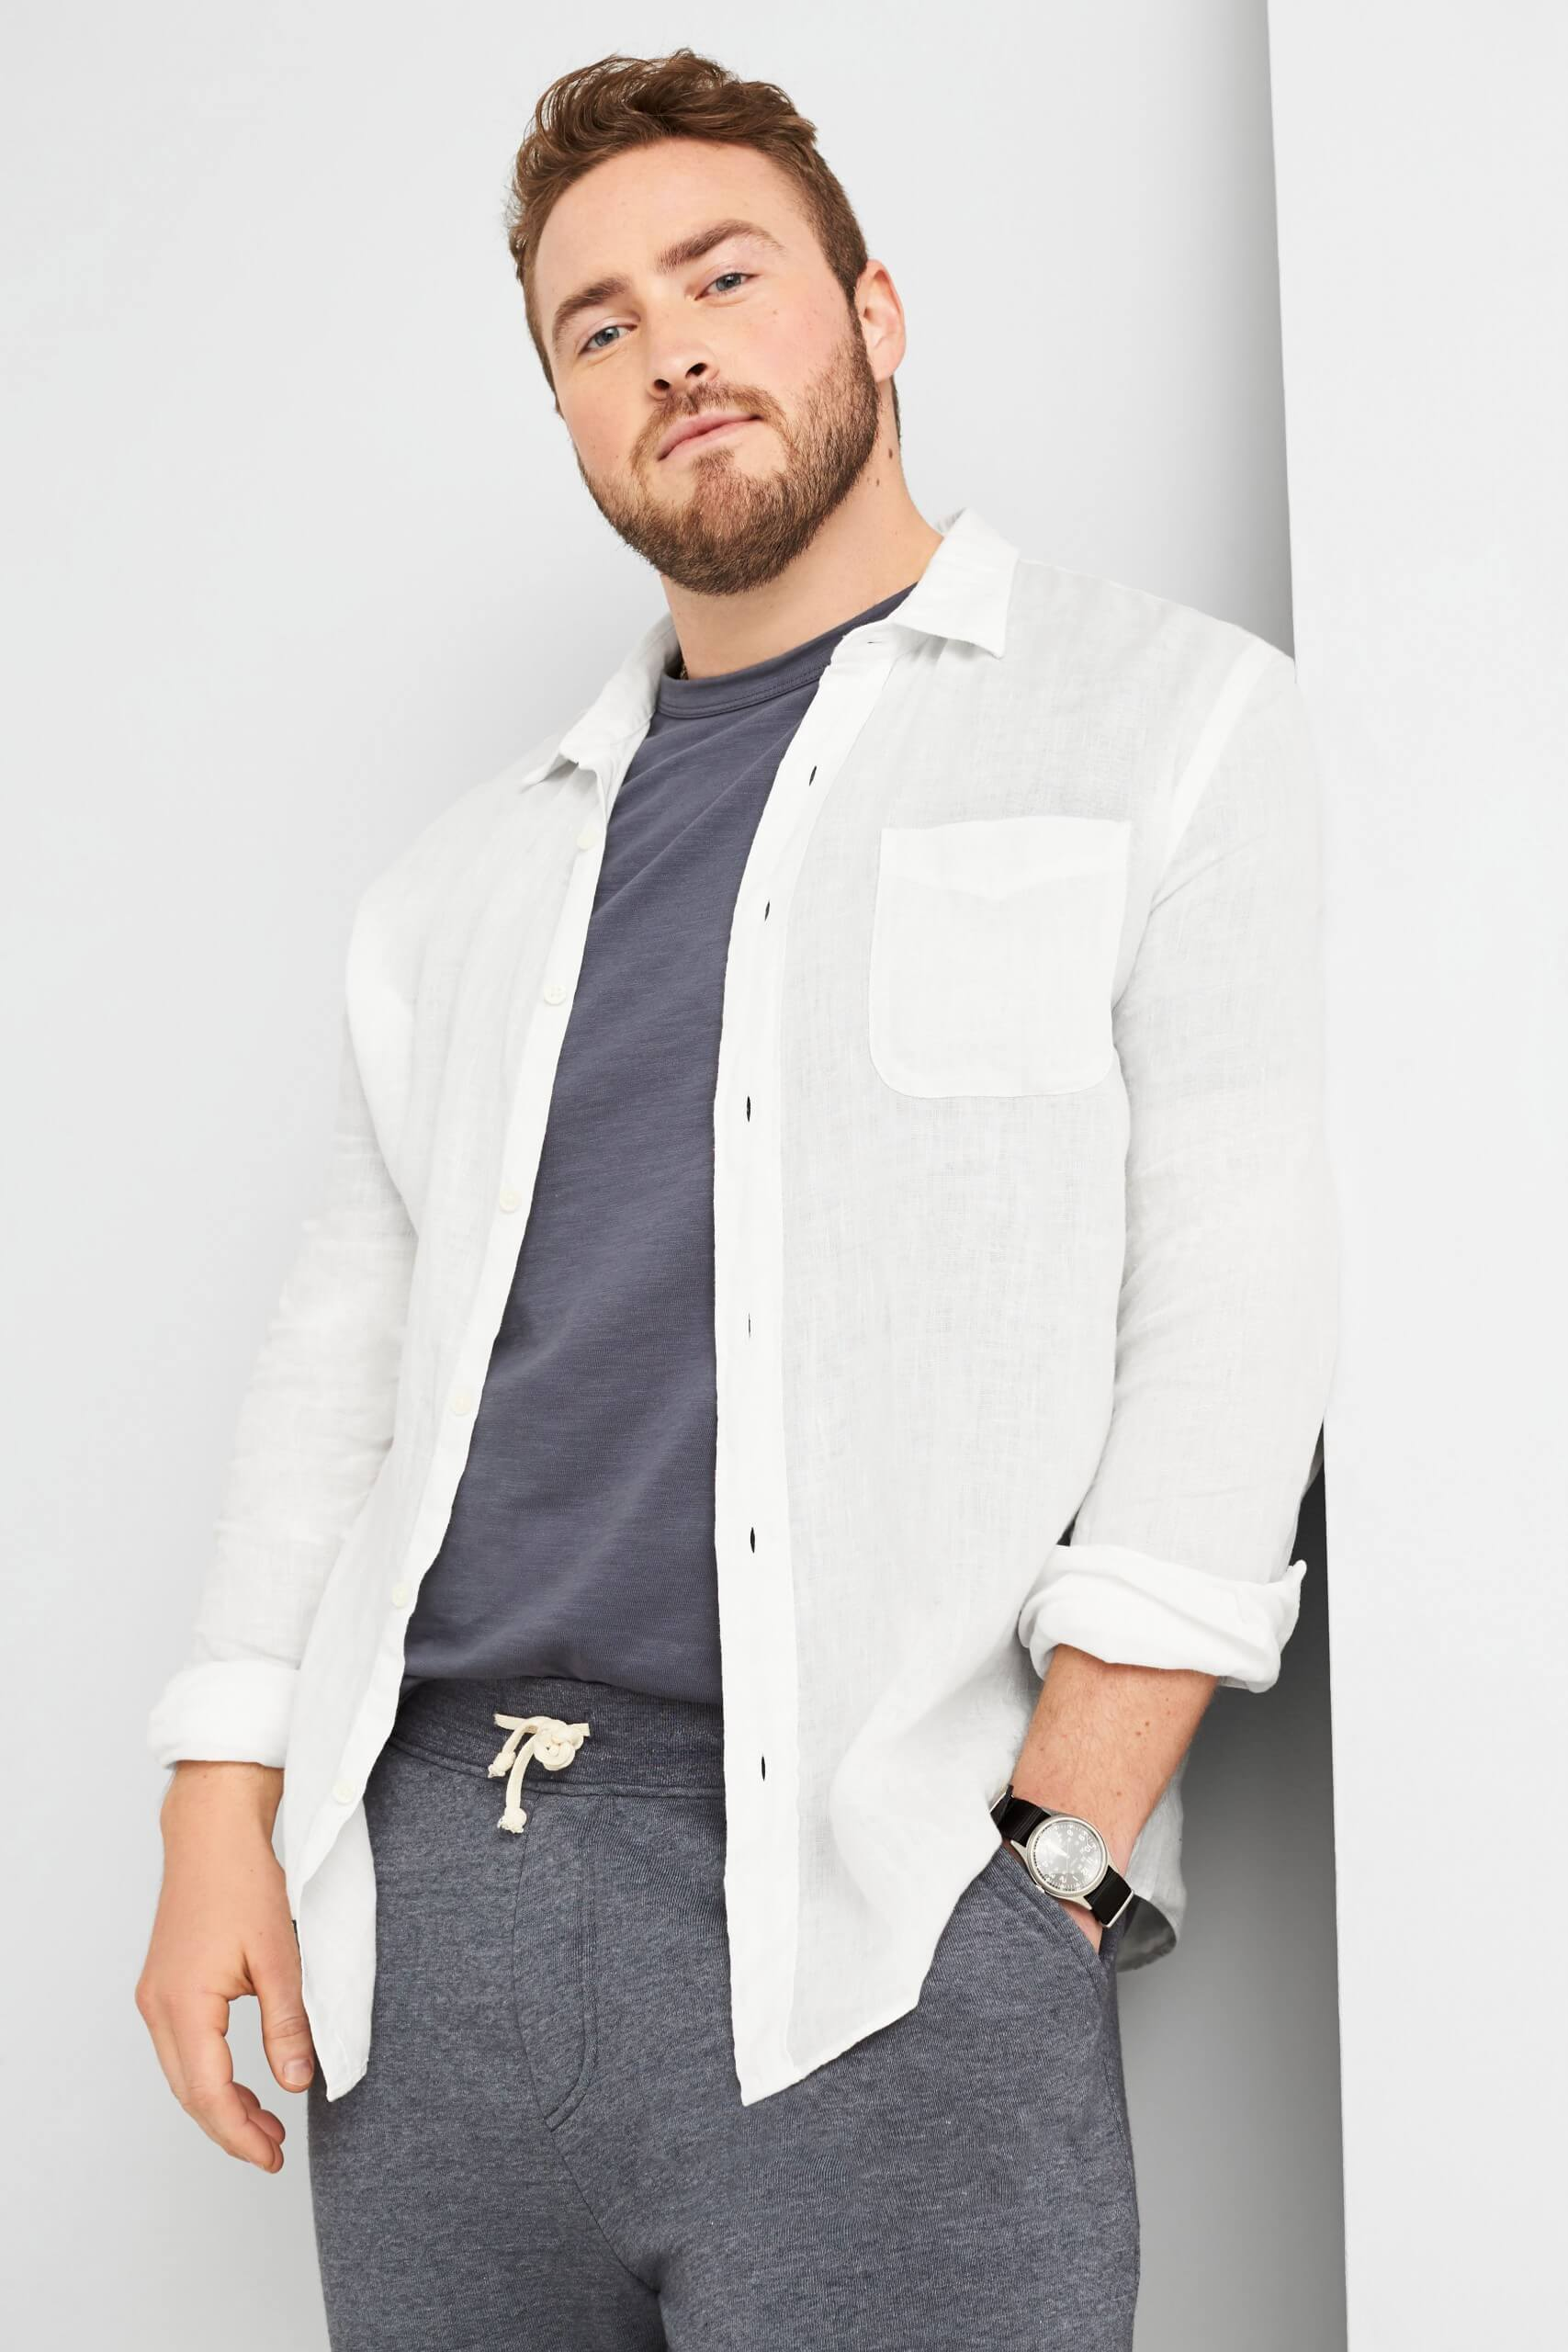 Stitch Fix Men's model wearing white button-down open over grey t-shirt and grey joggers.